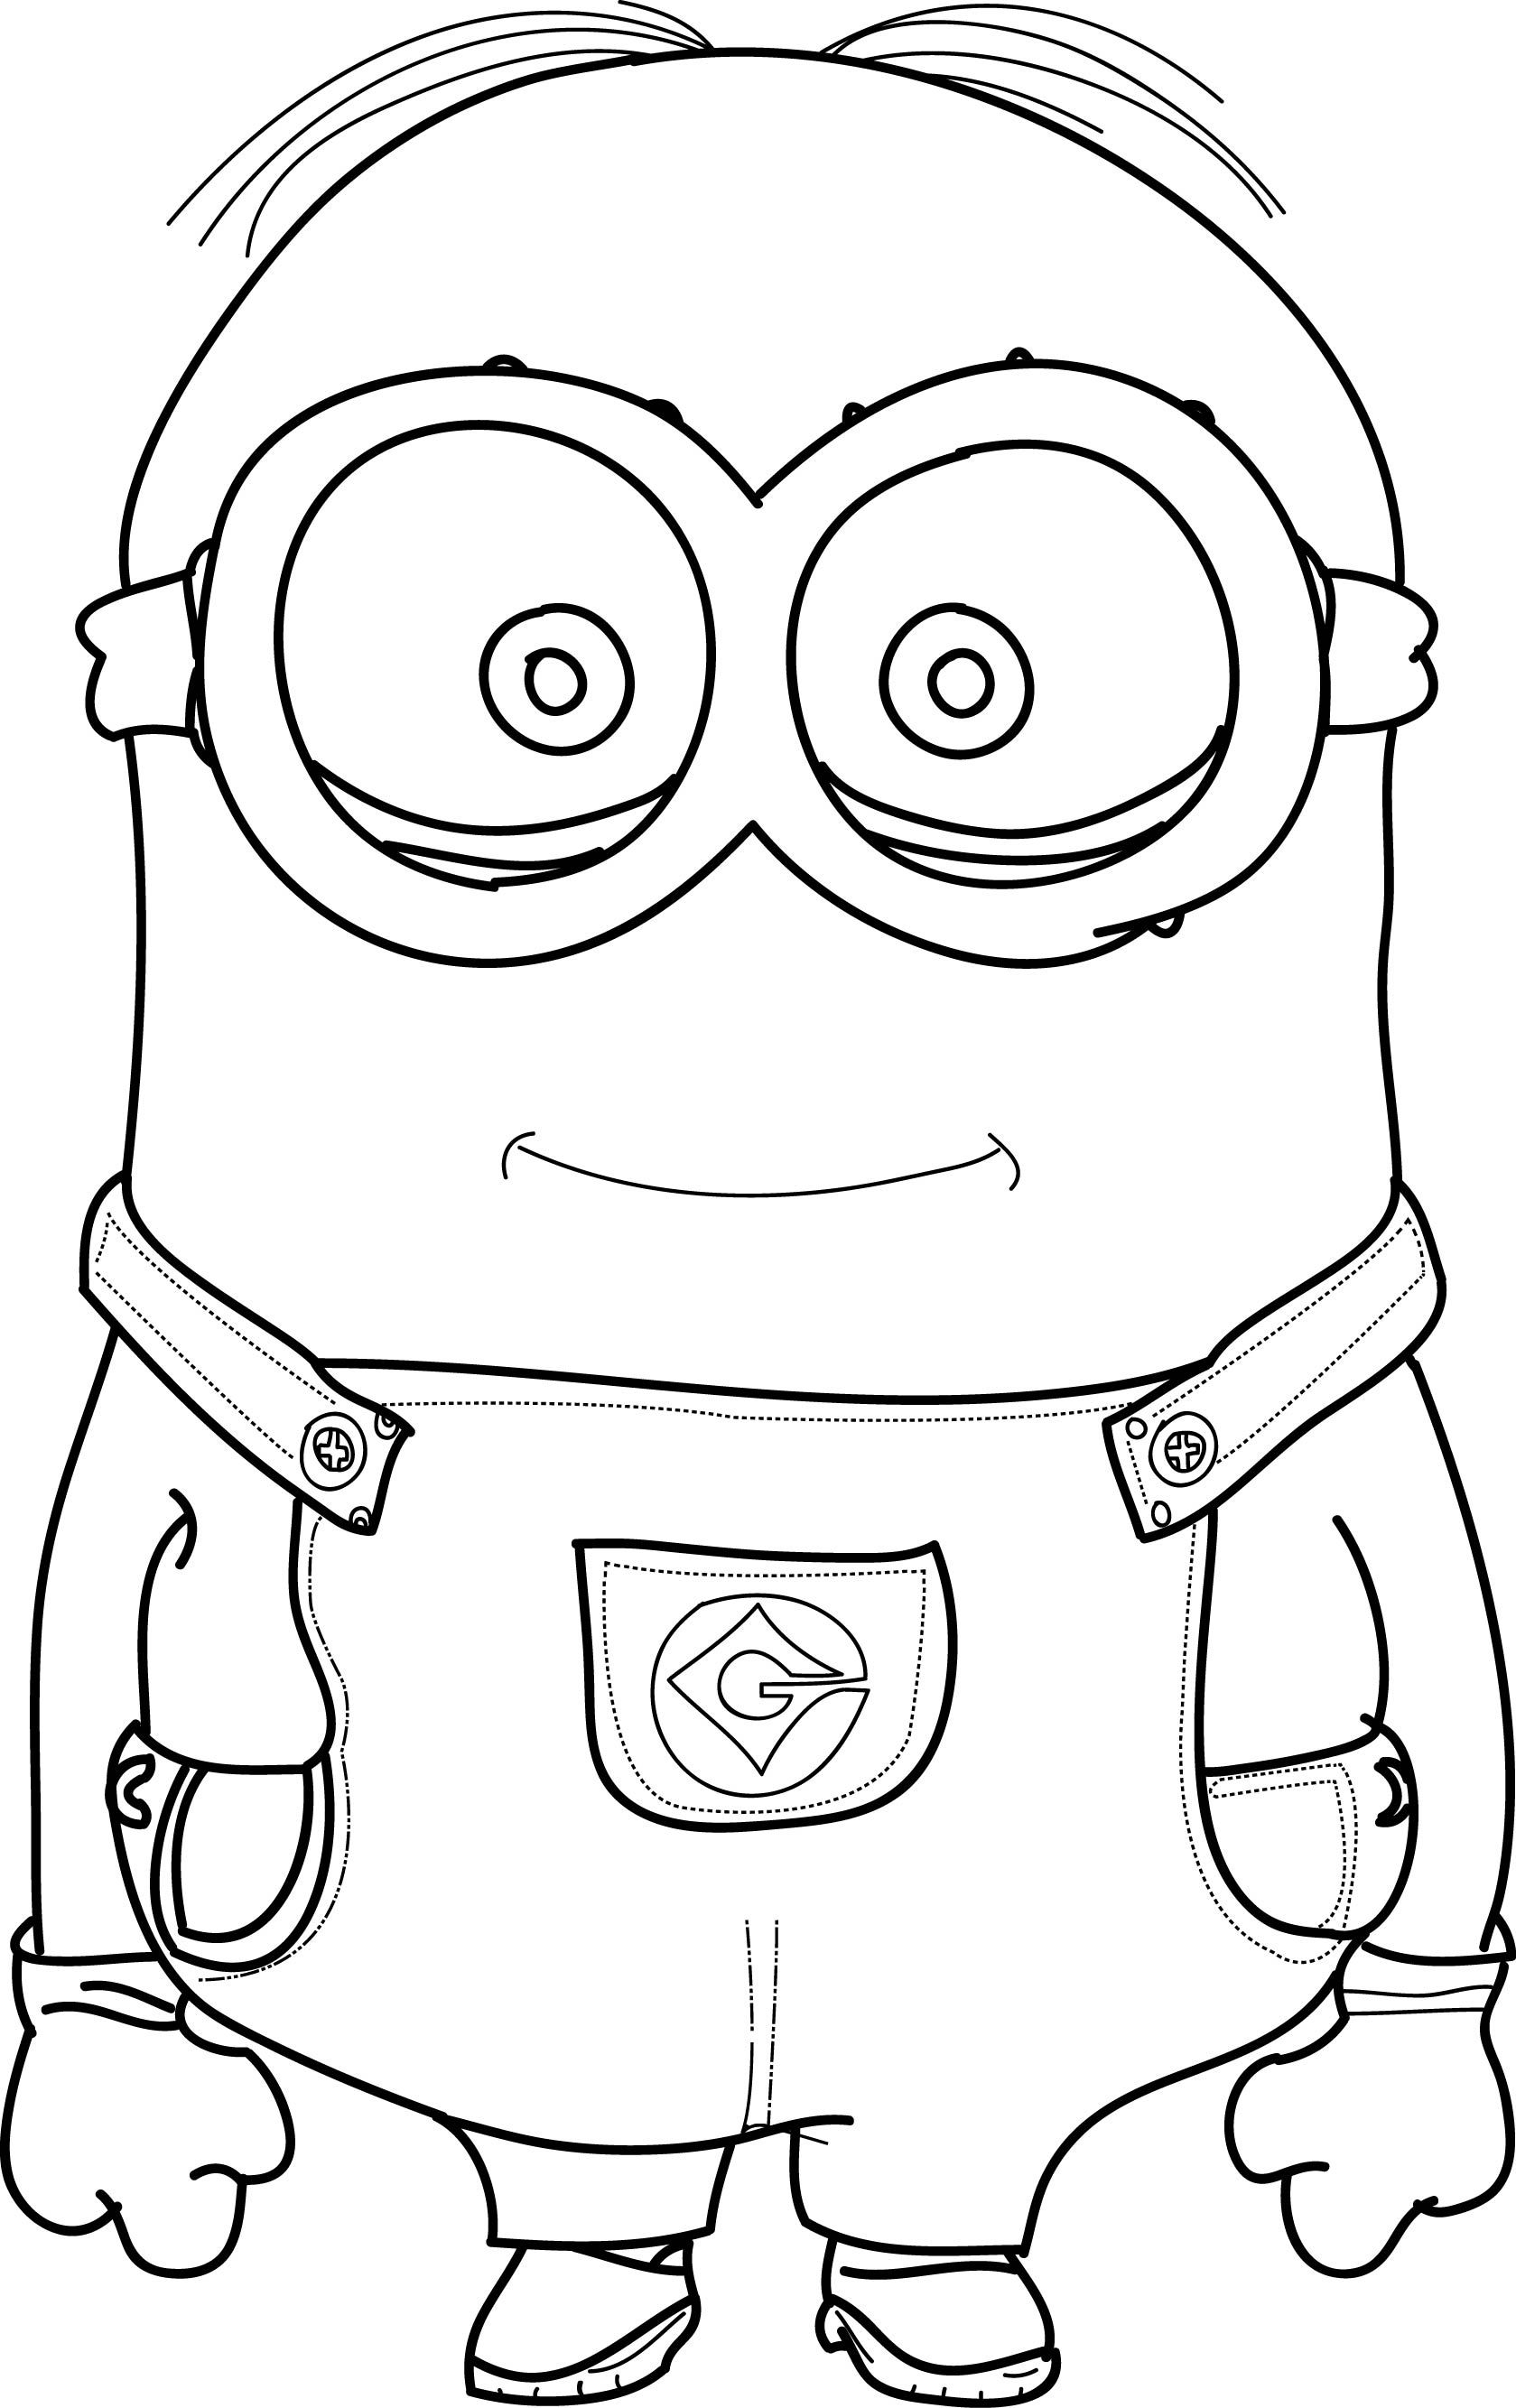 Fun coloring pages minions rocking ~ Minions Coloring Pages | Minion coloring pages, Cool ...